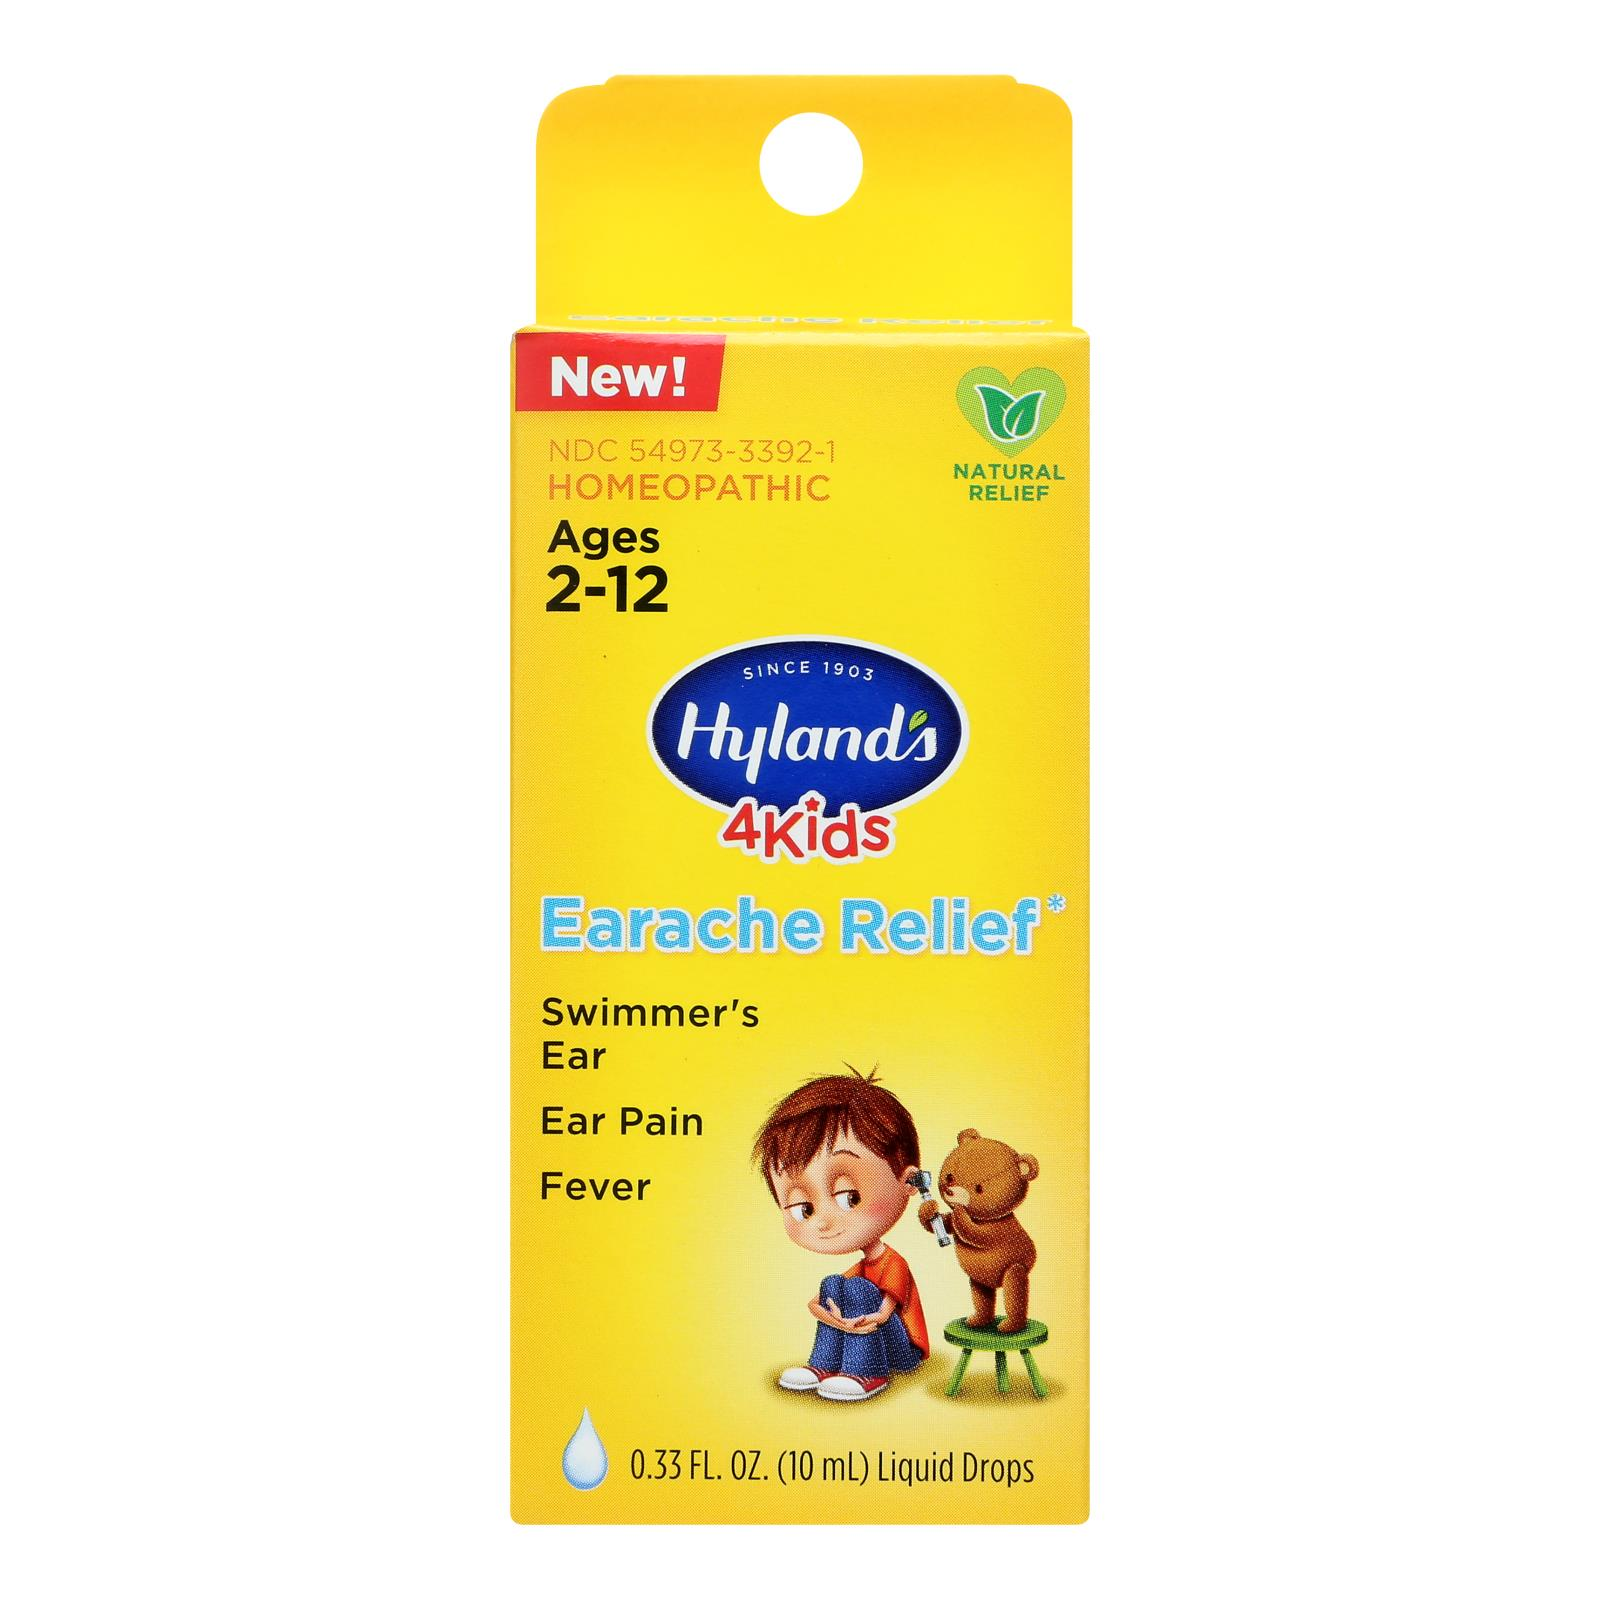 Hylands Homeopathic - 4kids Hmpthc Erch Rlf Drp - 1 Each - .33 OZ